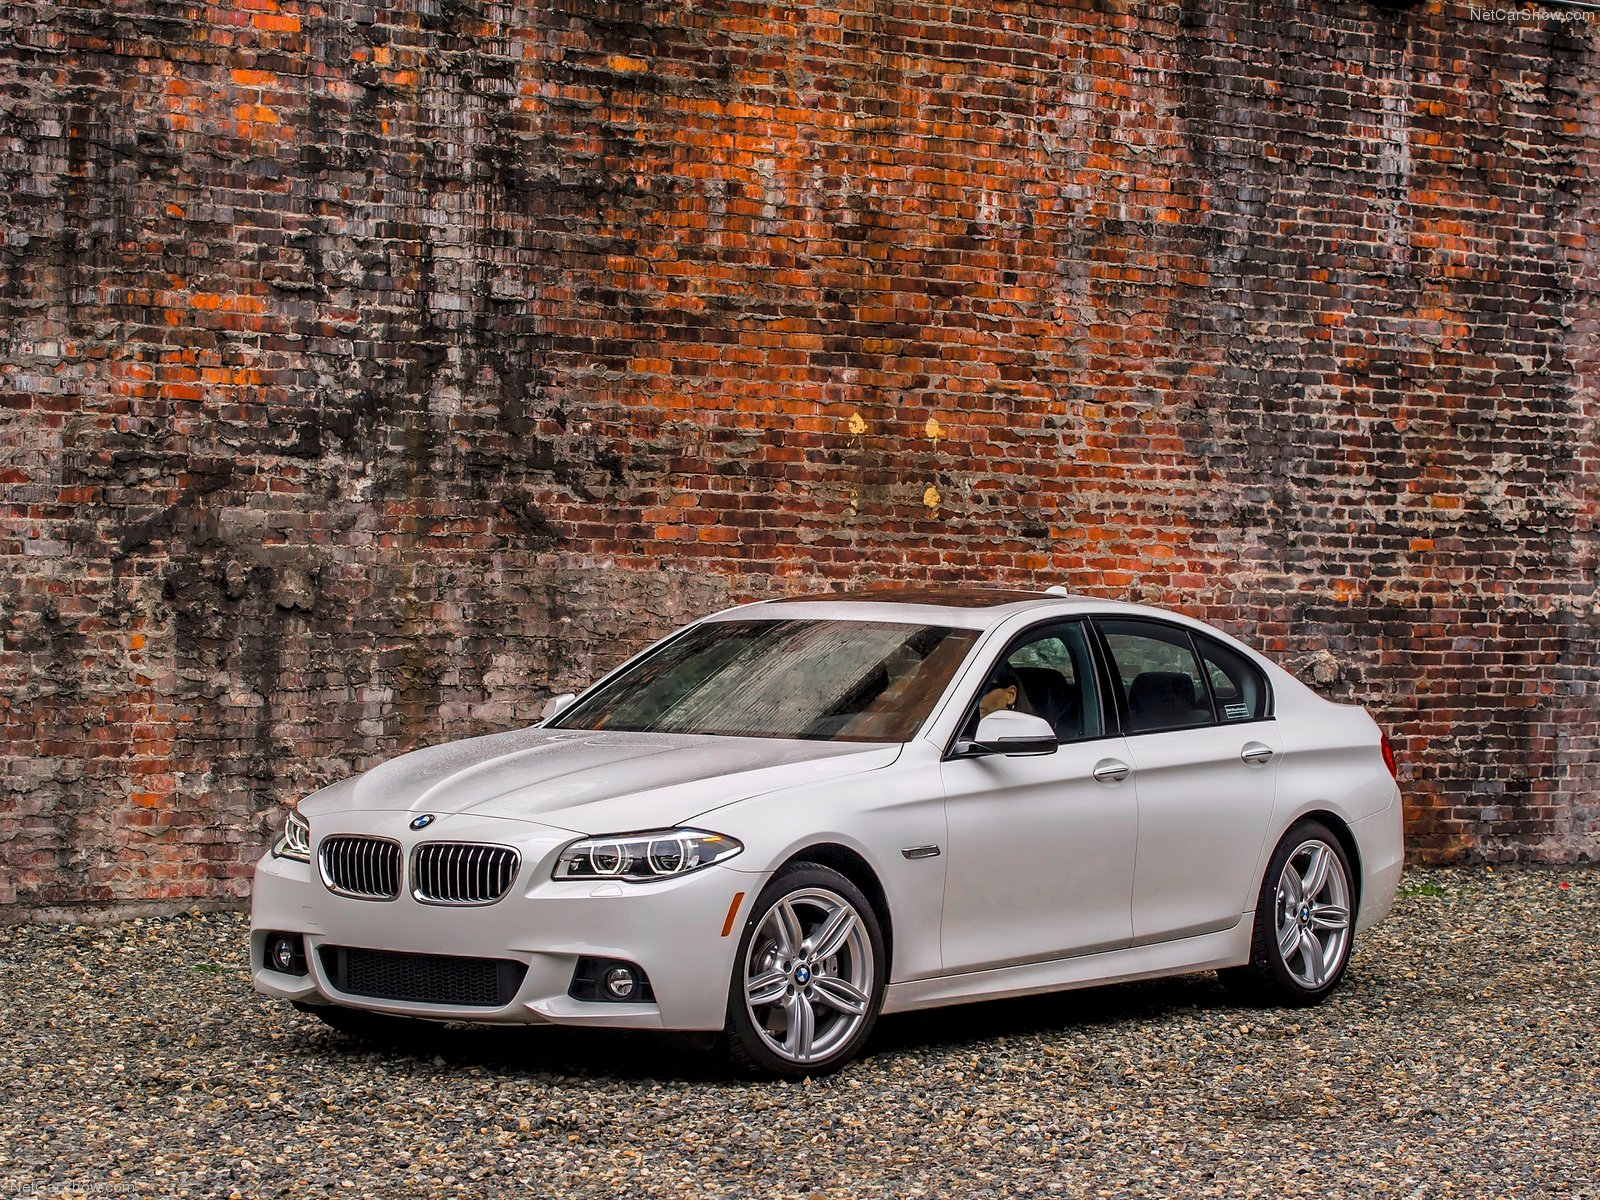 BMW-5-Series_2014_1600x1200_wallpaper_08